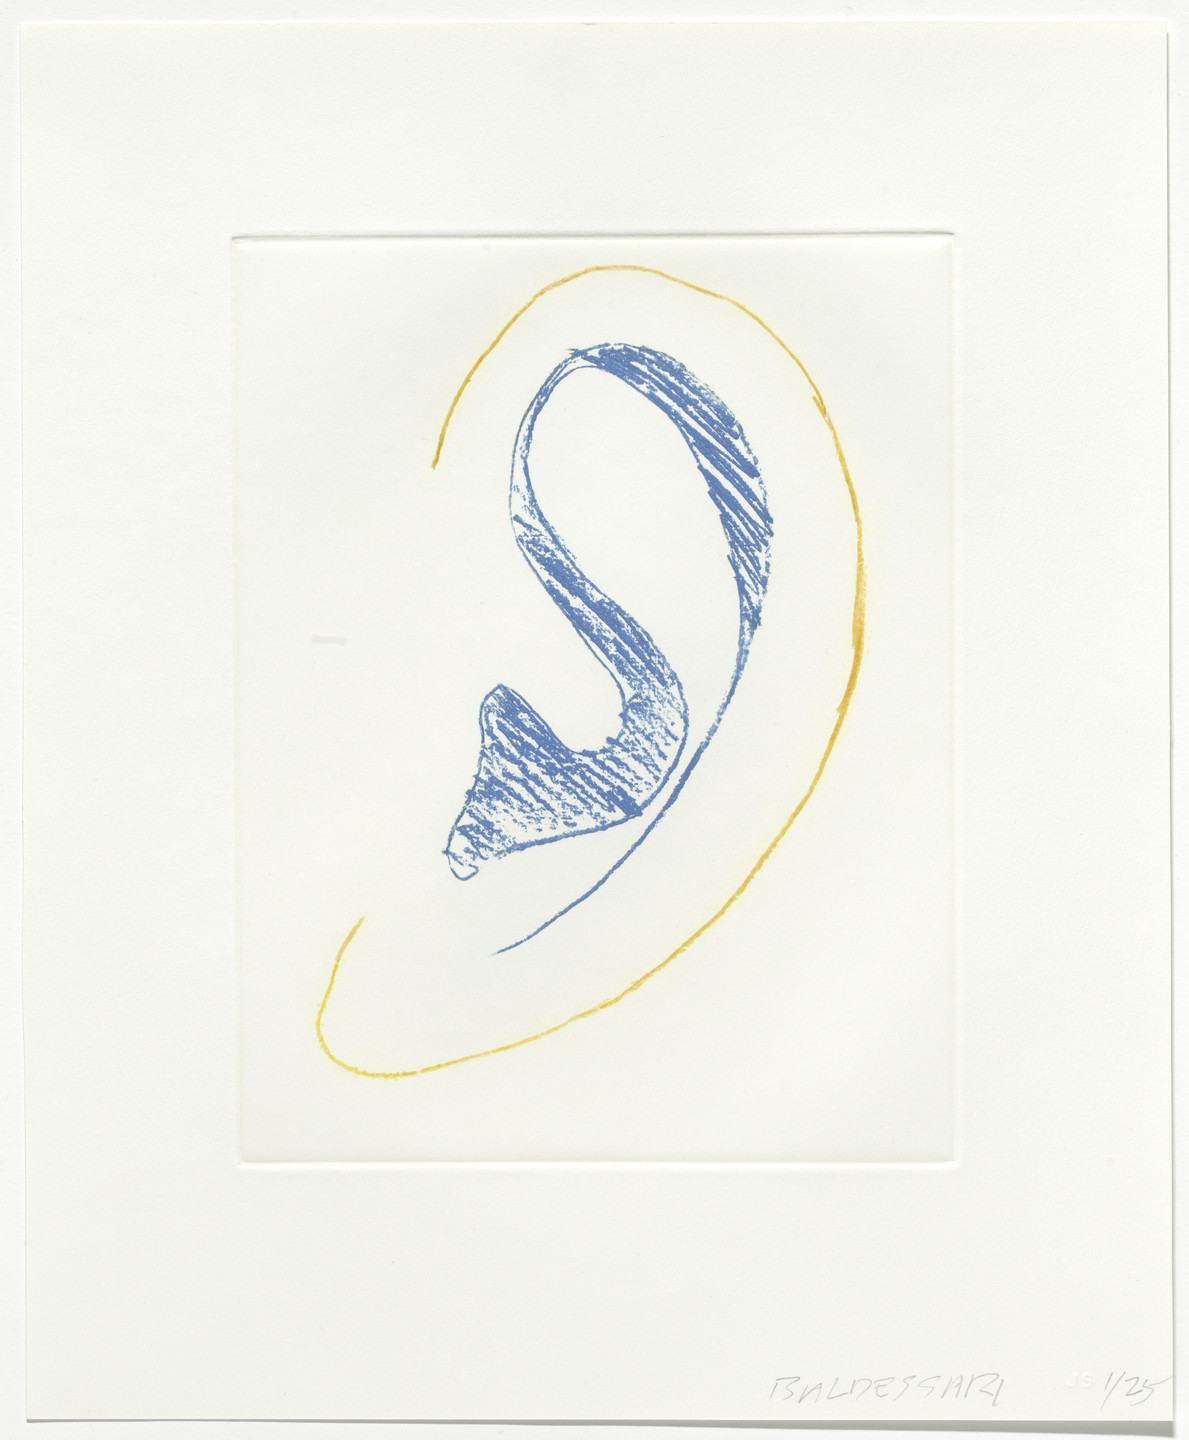 John Baldessari. Untitled from Six Ear Drawings (Complementary Colors). 2007